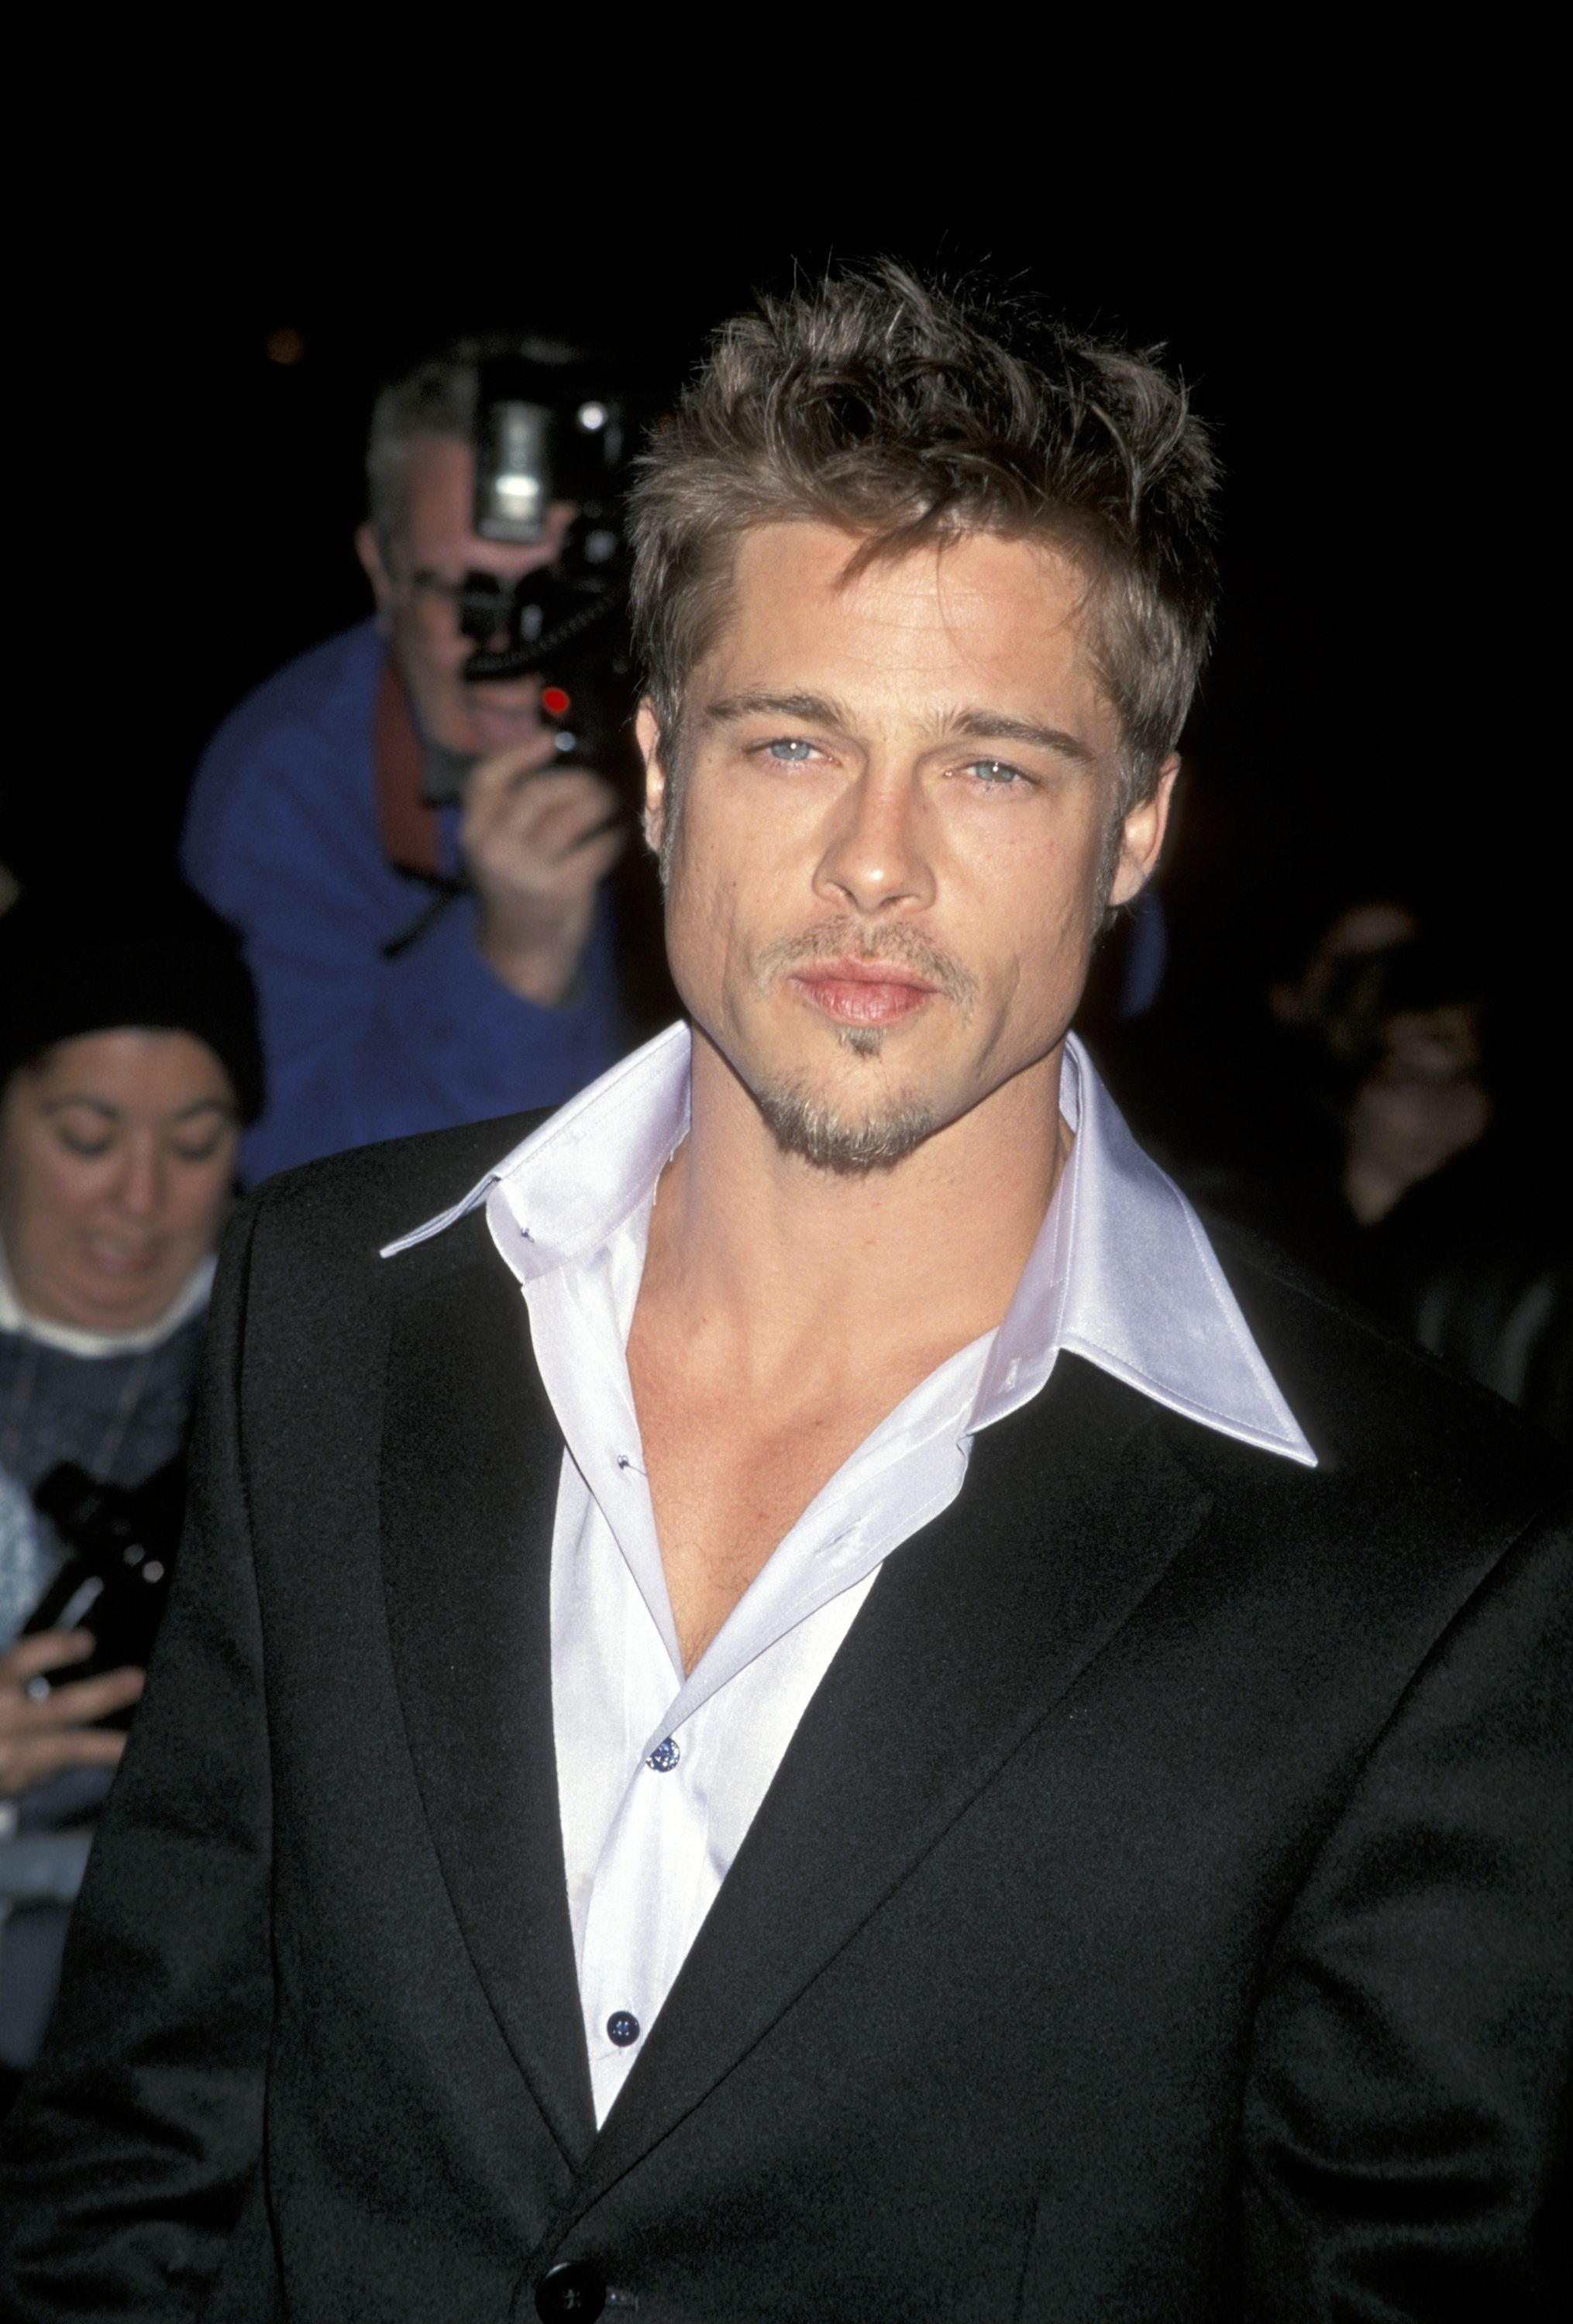 50 Photos of Brad Pitt That Prove He Hasn't Aged